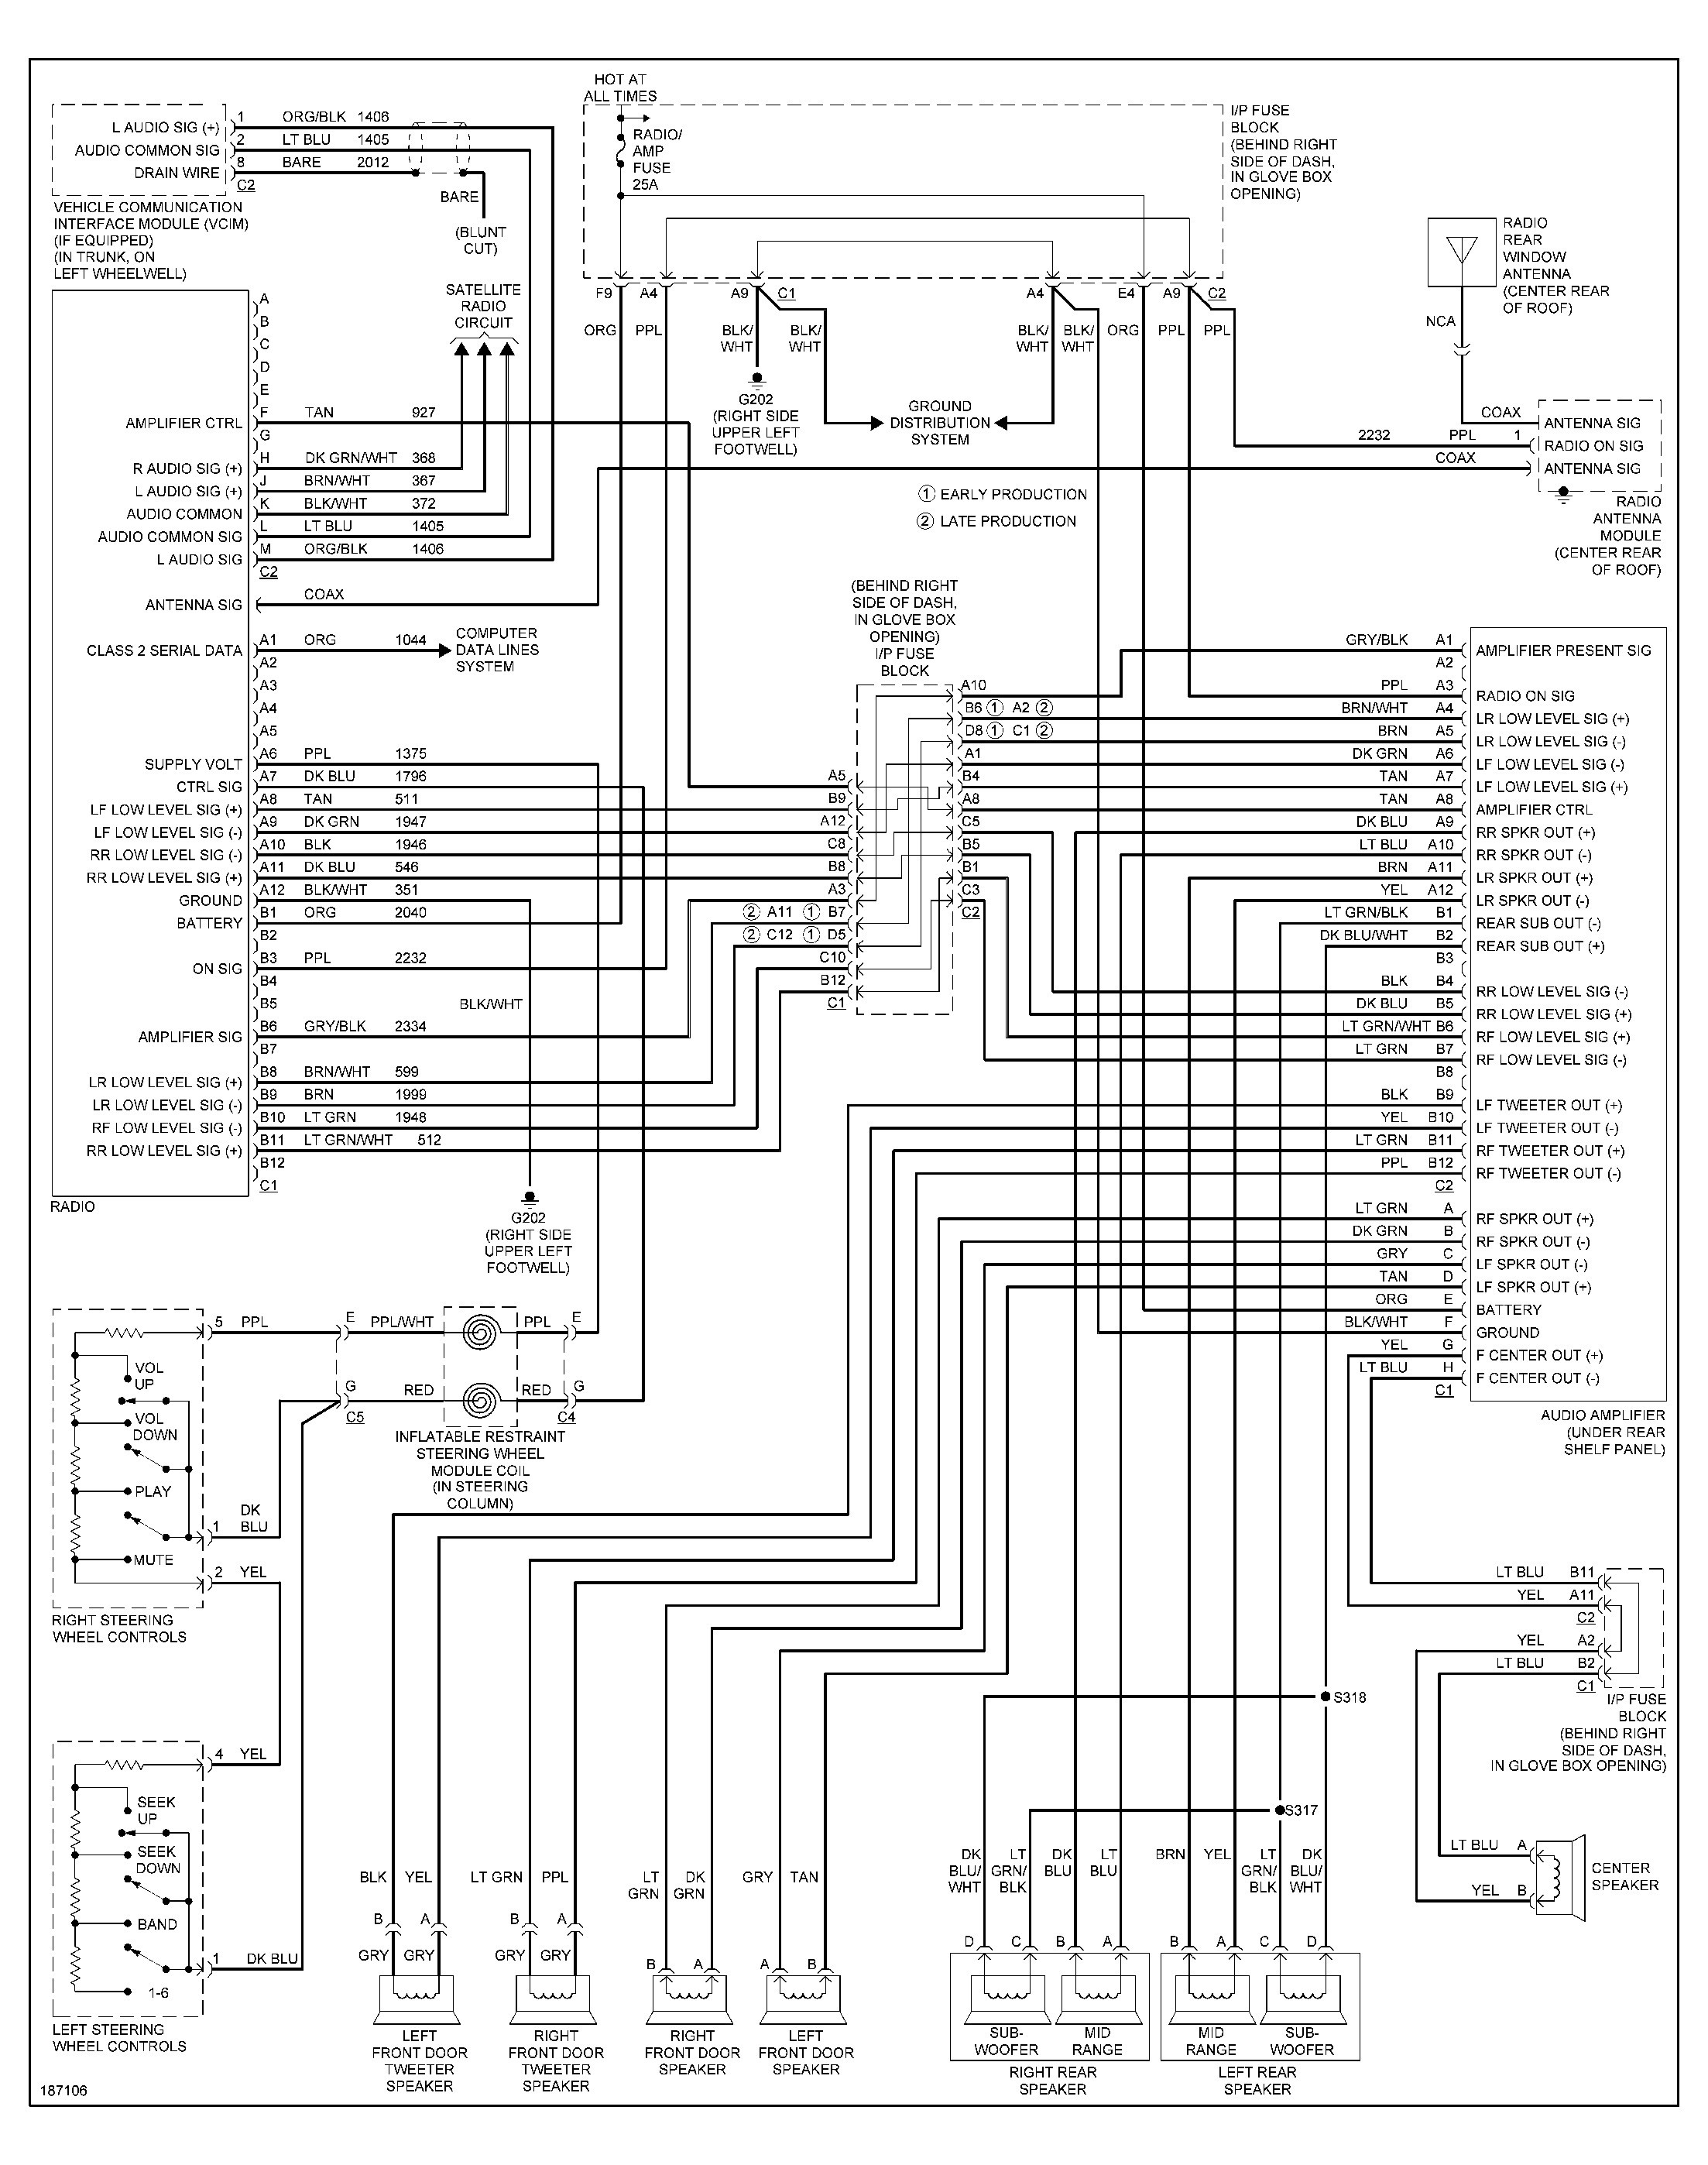 2000 pontiac grand am gt wiring diagram 1998 ford explorer xlt stereo 2001 engine my